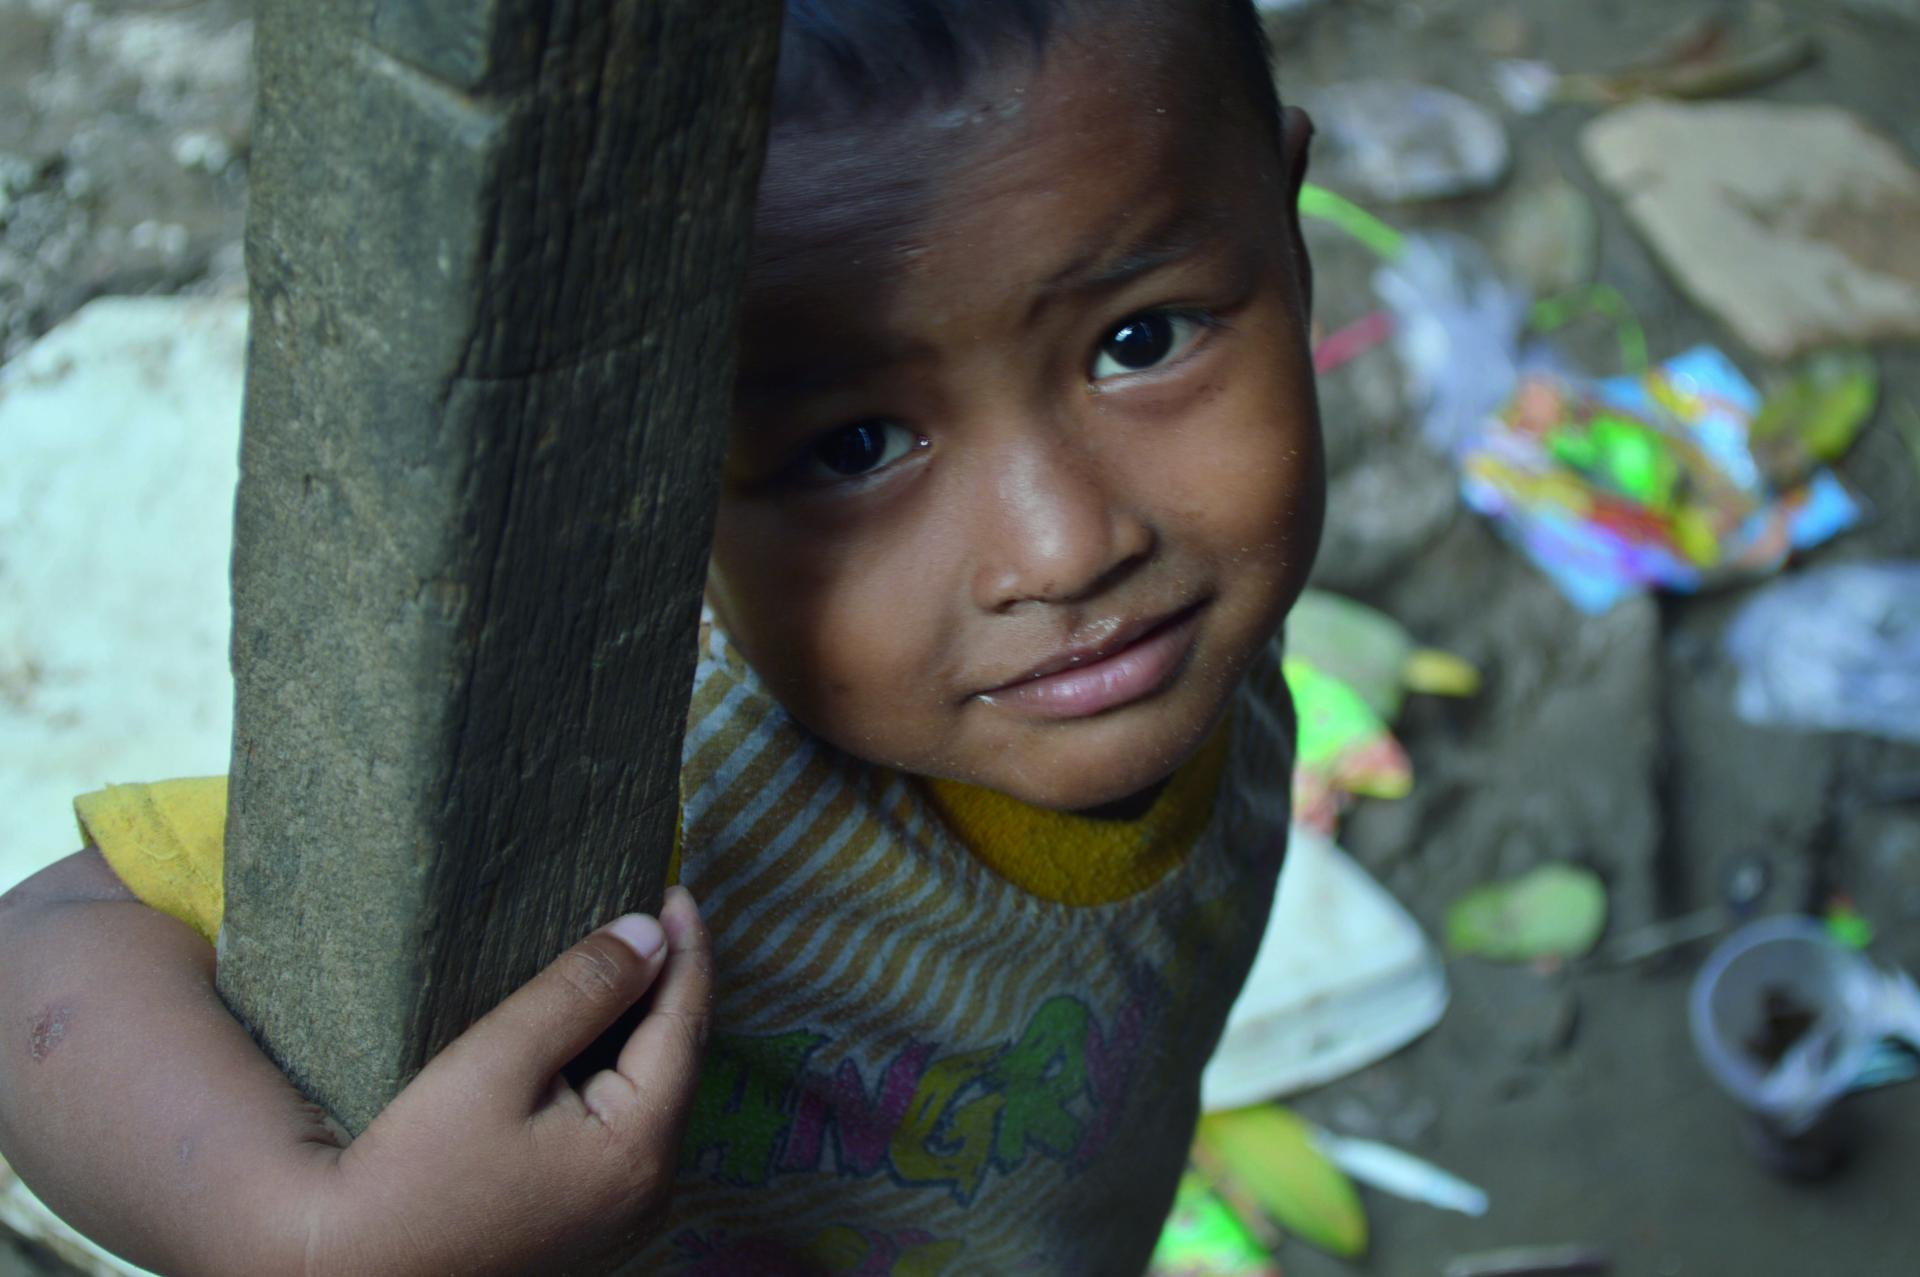 A child in an area of great poverty